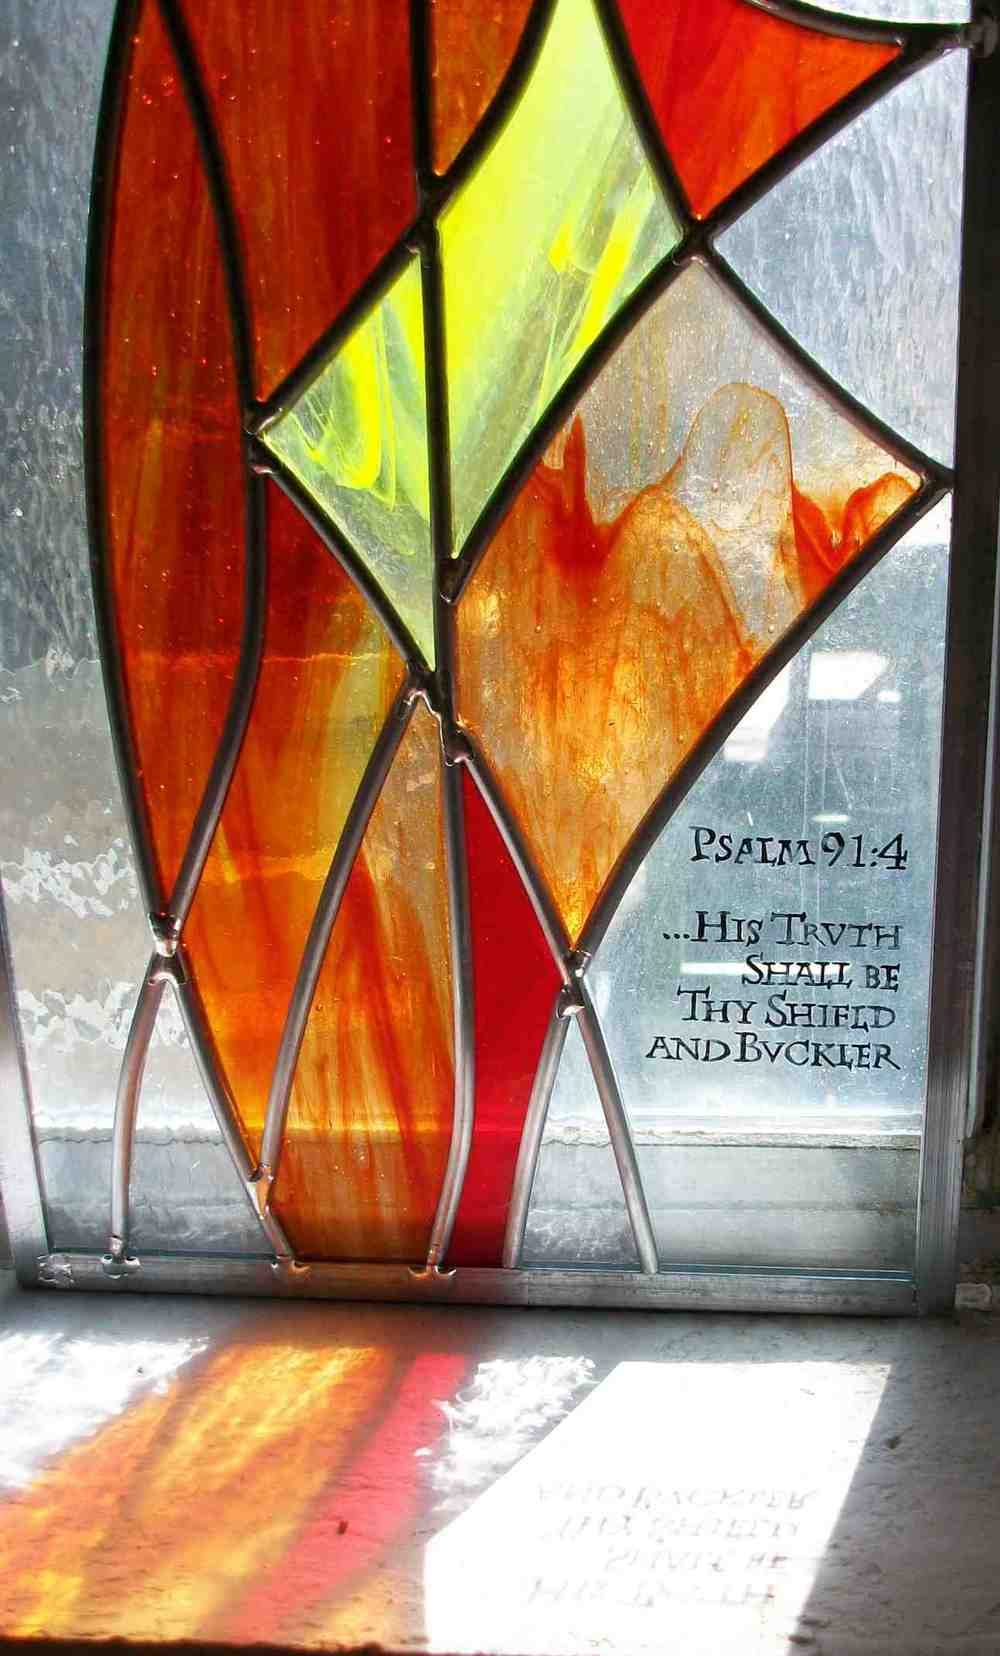 Reflection of Stained Glass Window